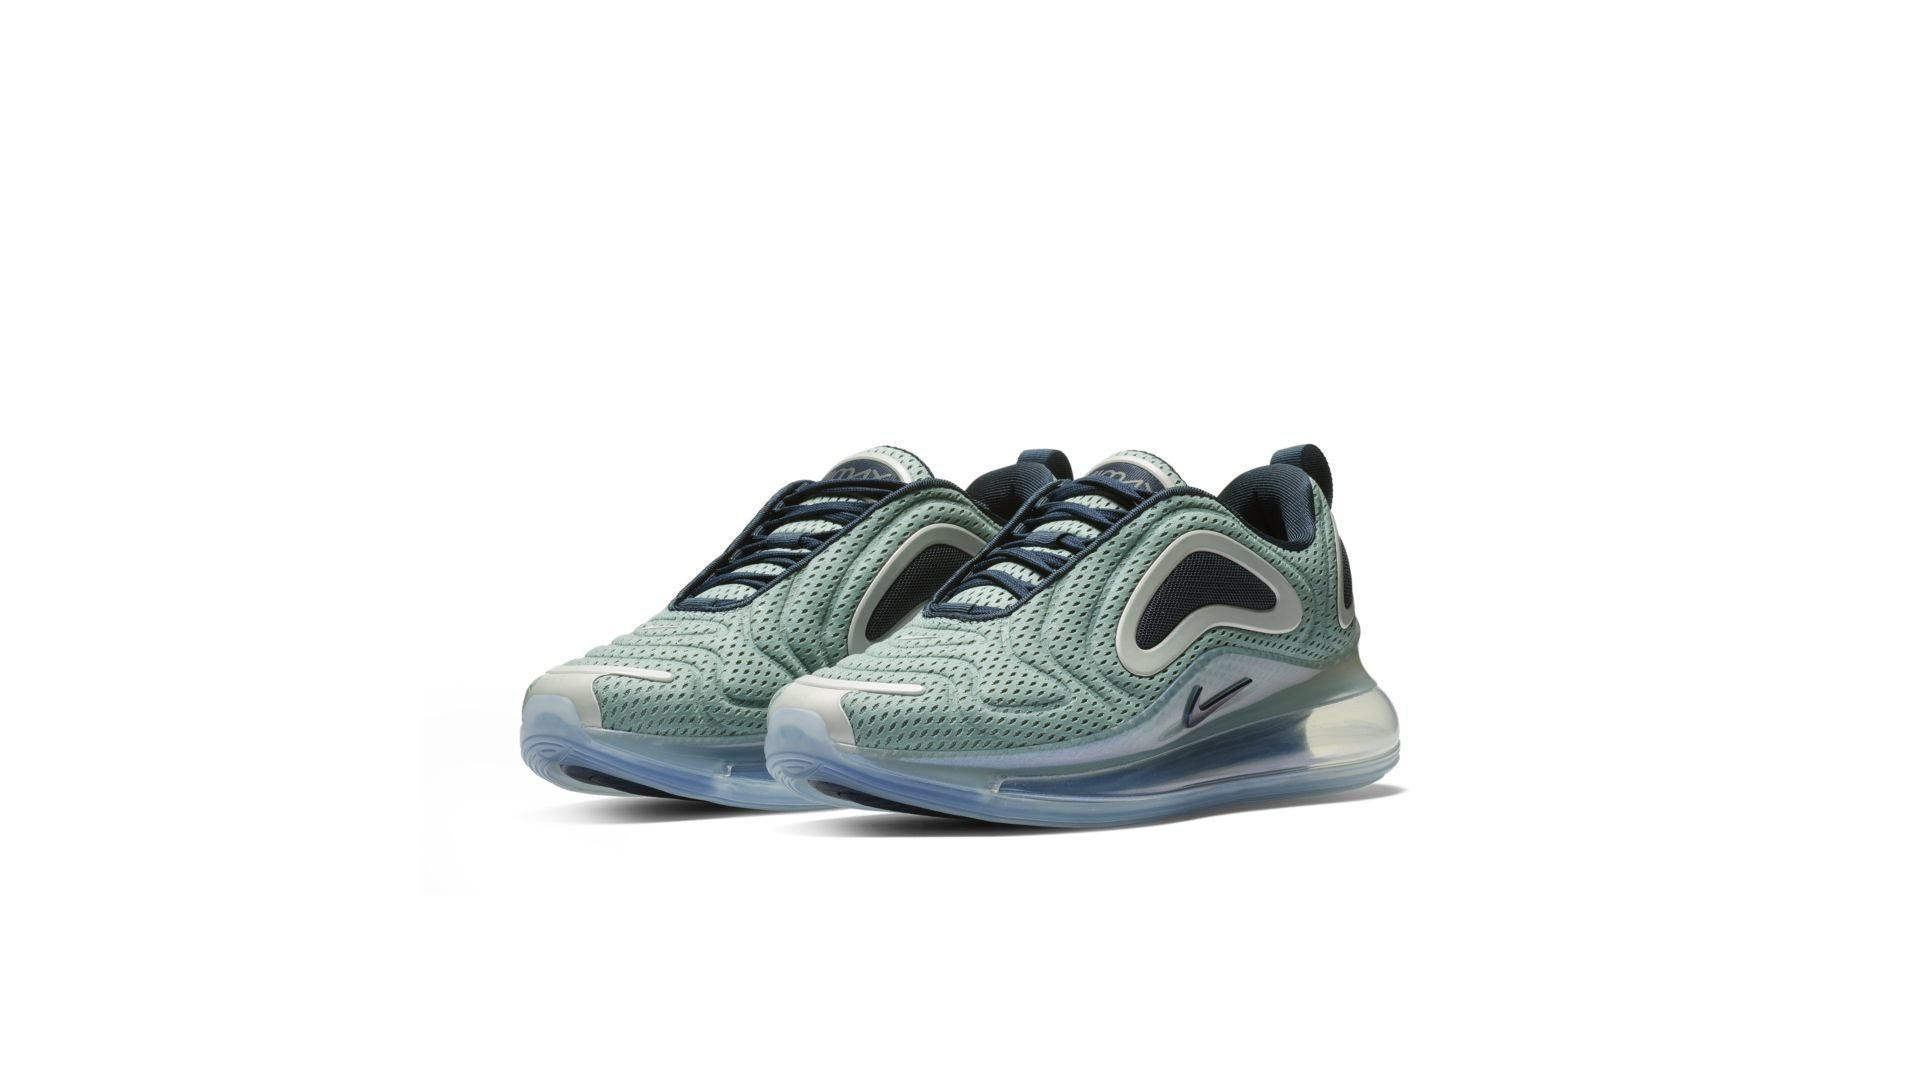 Nike Air Max 720 'Northern Lights Day' (AR9293 001)